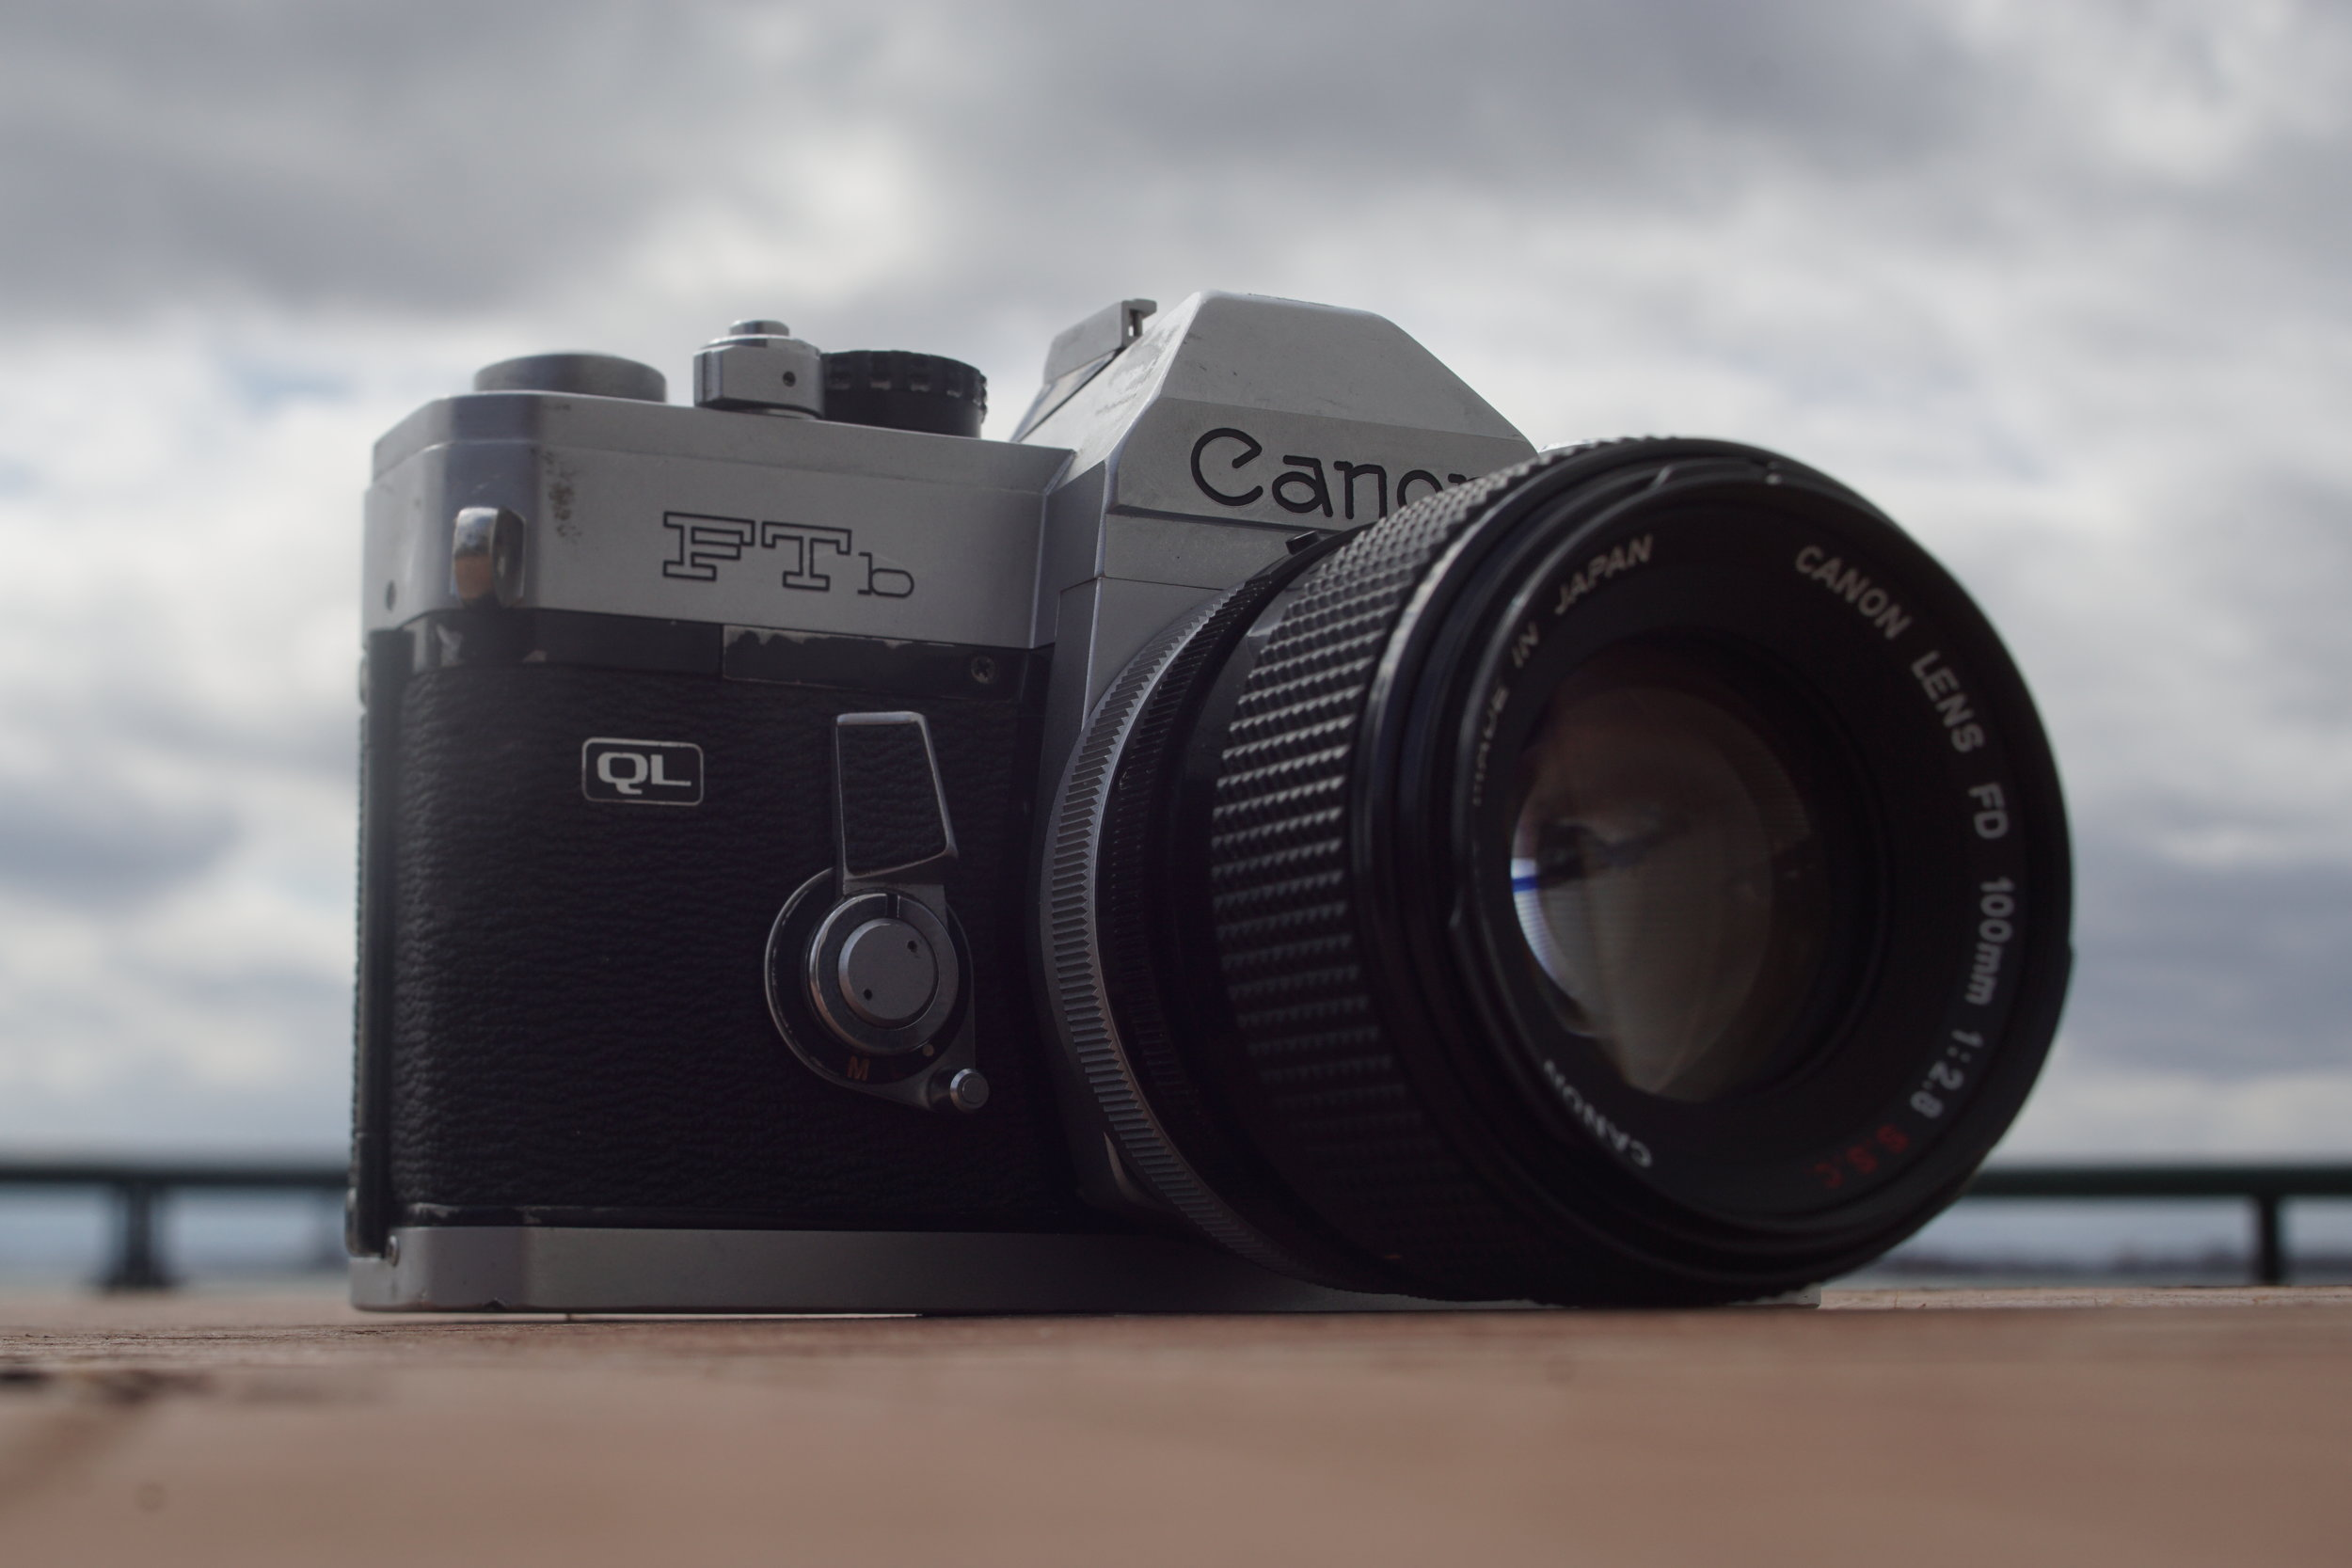 Going Analog, Full 35mm Photography Kit, Canon FTb QL with FD 100mm f/2.8 S.S.C. Lens